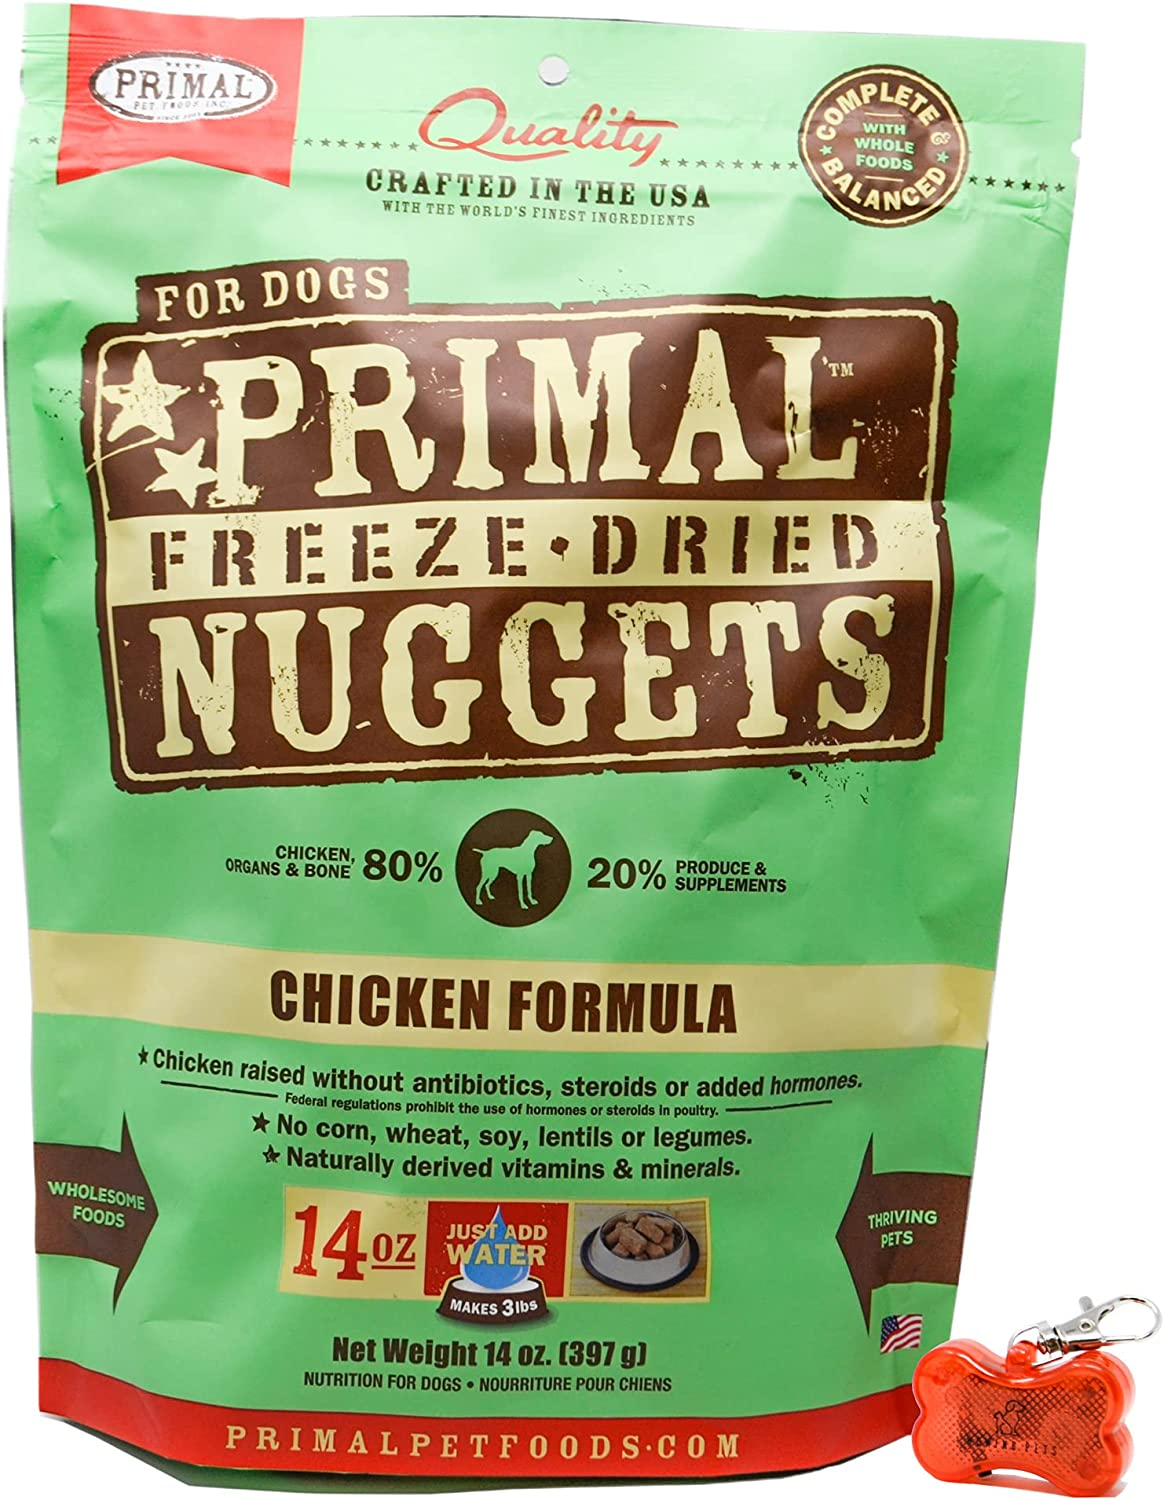 Primal Pet Food - Freeze Dried Chicken Nuggets Dog Food 14oz Bag with WoWing Pets Pendant